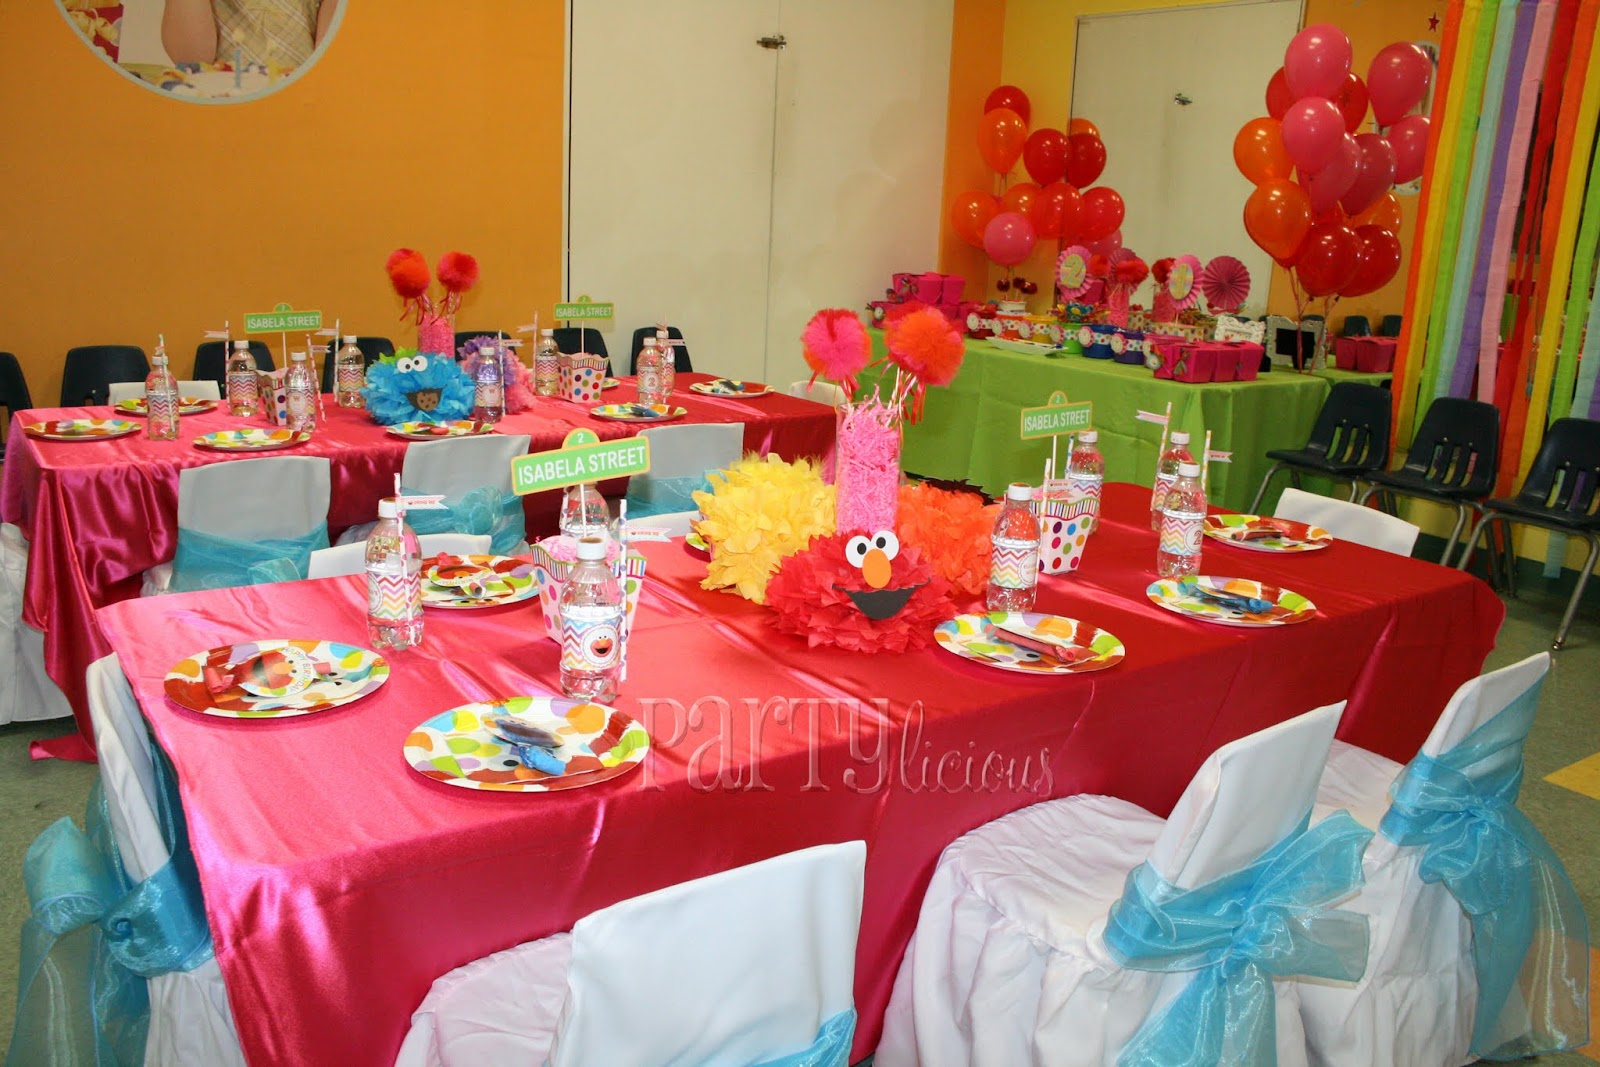 The Kids Tables Had Amazing Centerpieces With Tulle Pom Wands Created By Mare And Tissue Poms Faces Of Sesame Street Characters